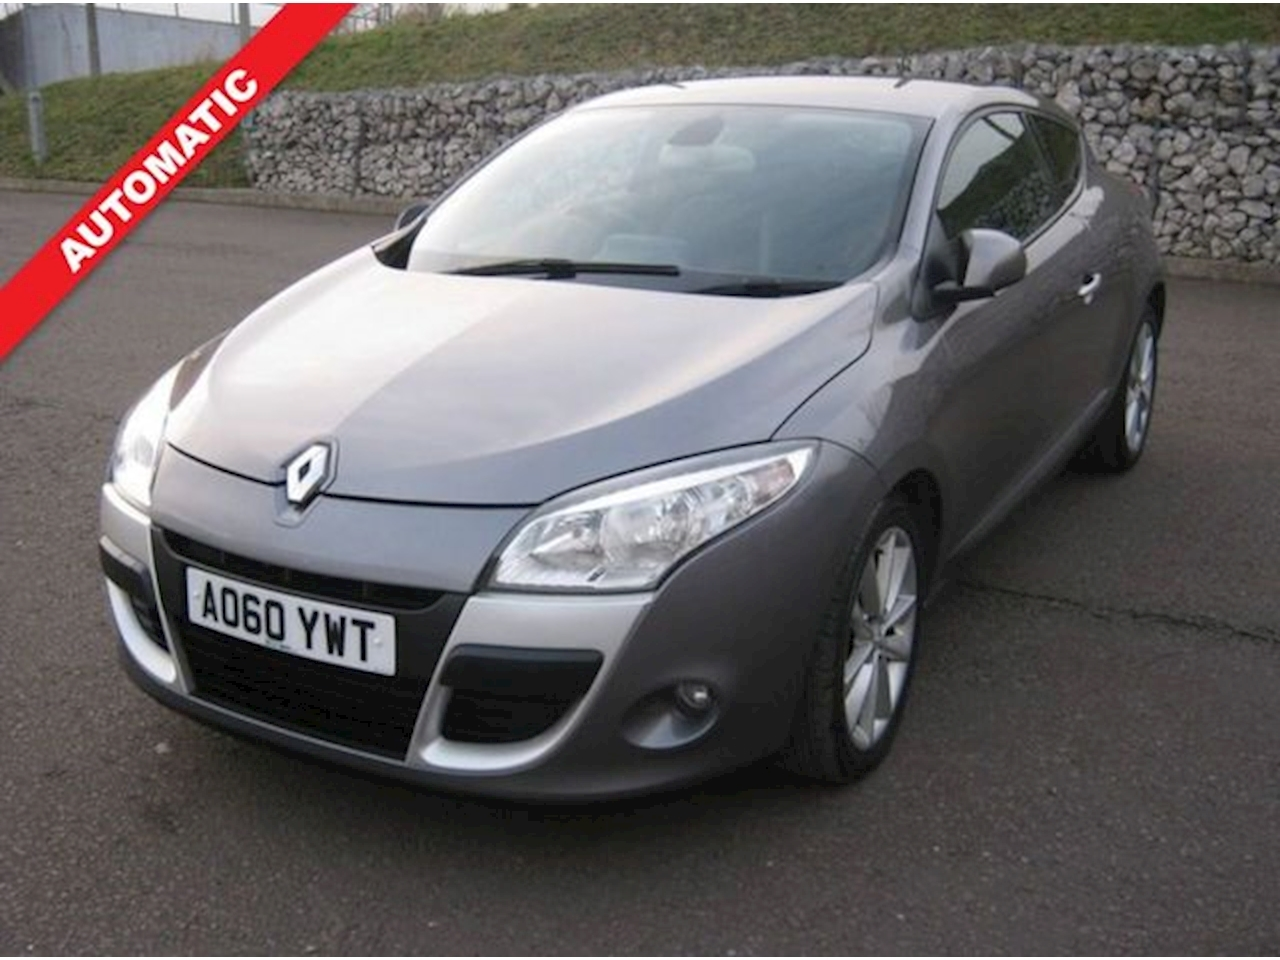 Renault Megane Privilege Tomtom Dci Fap 2.0 3dr Coupe Automatic Diesel